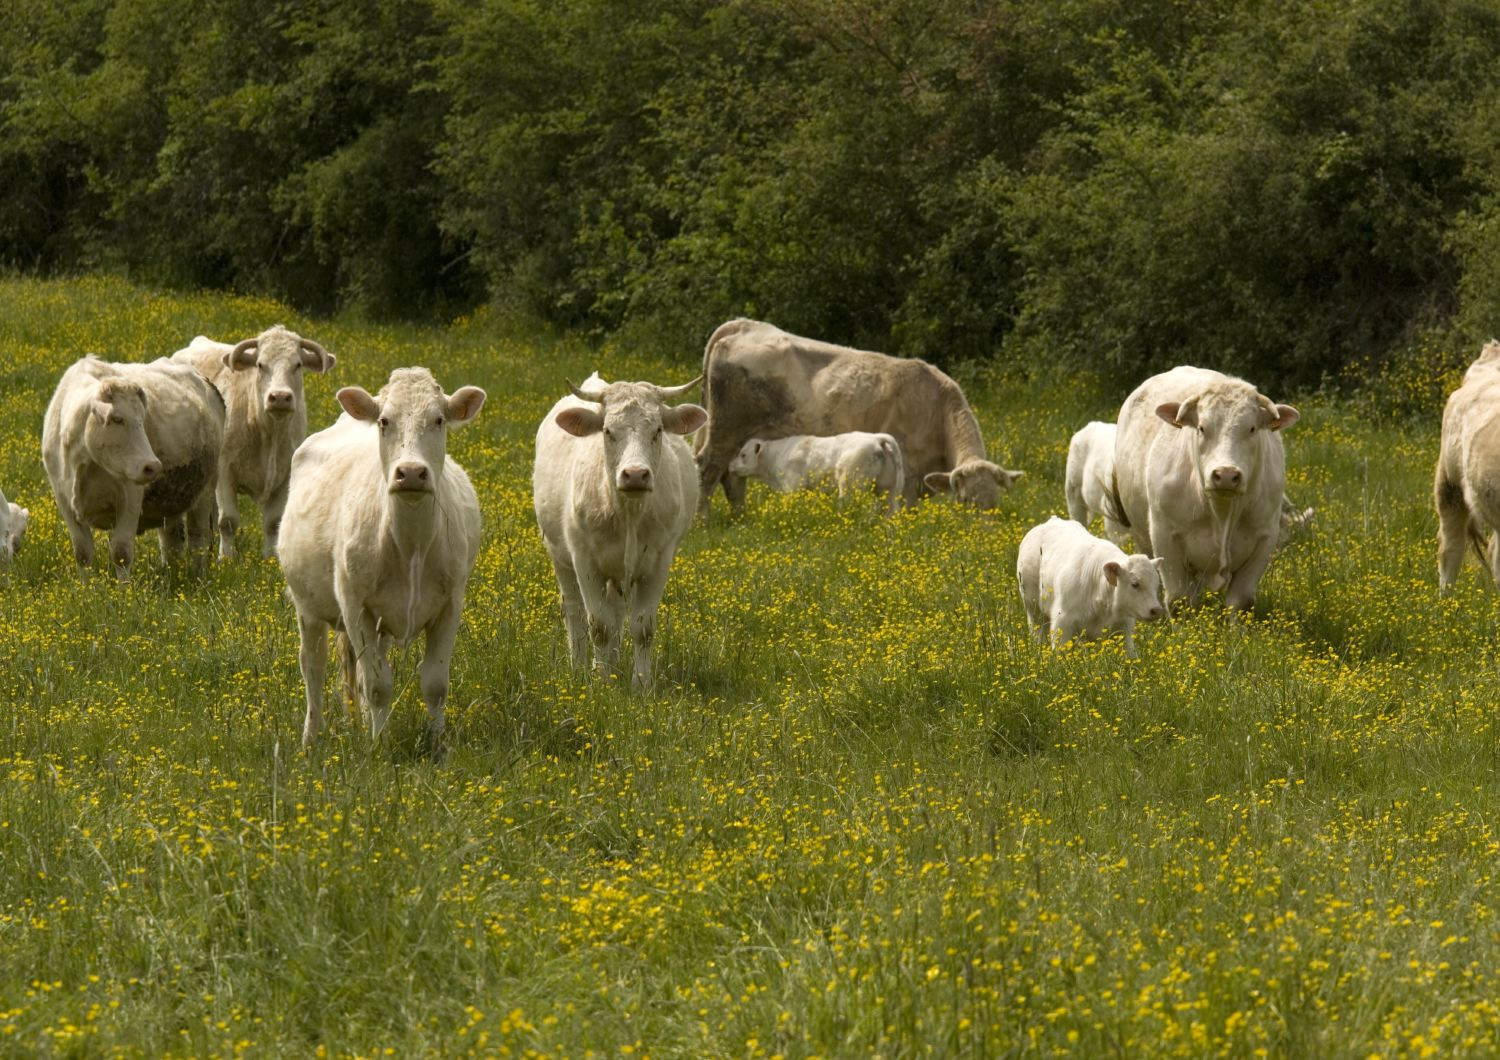 Cattle with calves in lush flowery pasture with buttercups.